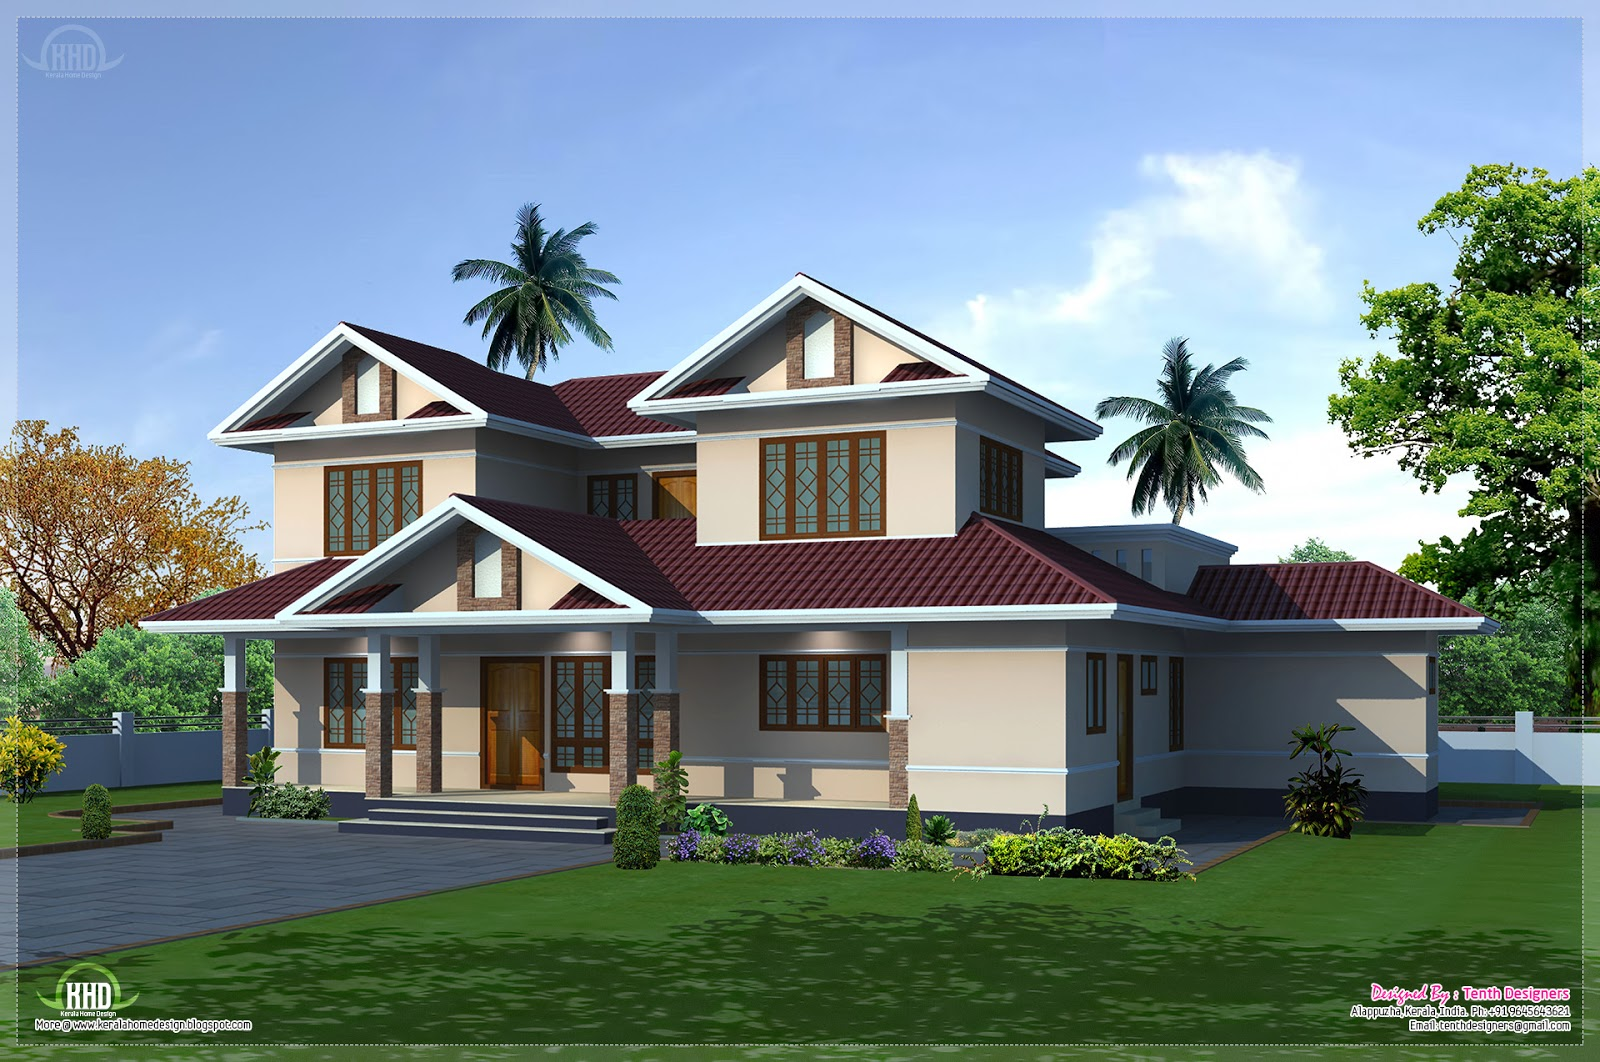 Exterior traditional house plans exterior house designs for Design traditions home plans